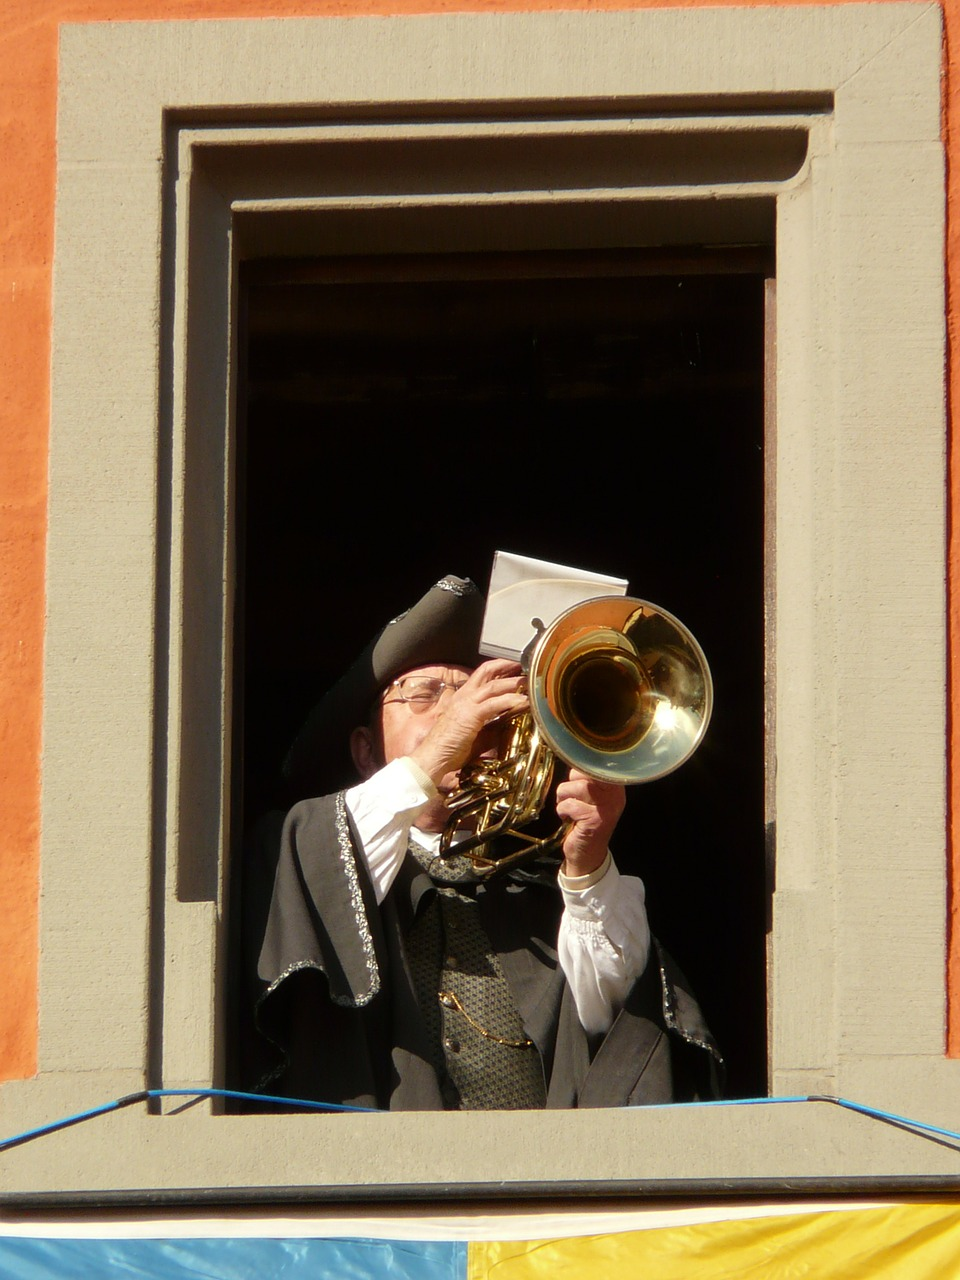 trombone player,trombone,will,music,man,play,person,free pictures, free photos, free images, royalty free, free illustrations, public domain